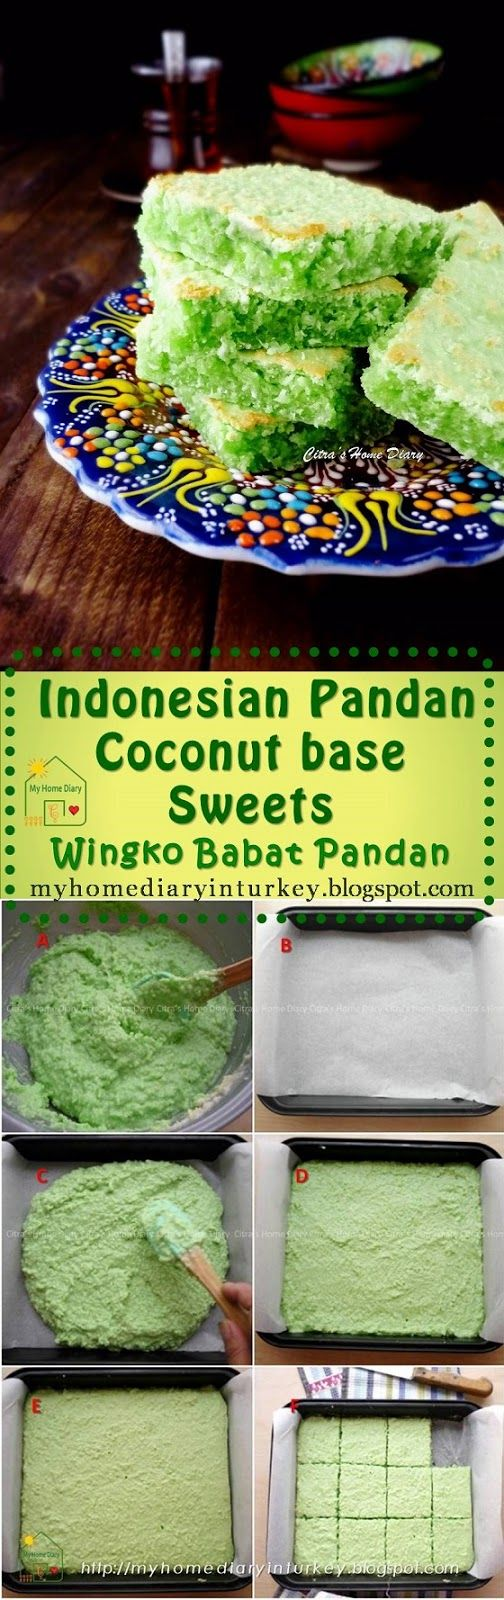 Wingko Babat Pandan /  Indonesian Pandan Coconut base cake. one of Indonesian old traditional snack (jajan Pasar) which may already exist decades ago together with other some traditional snack/ food. Made from grated coconut and glutinous rice flour as main ingredient. Wingko is very famous on the northern coast of the island of Java.